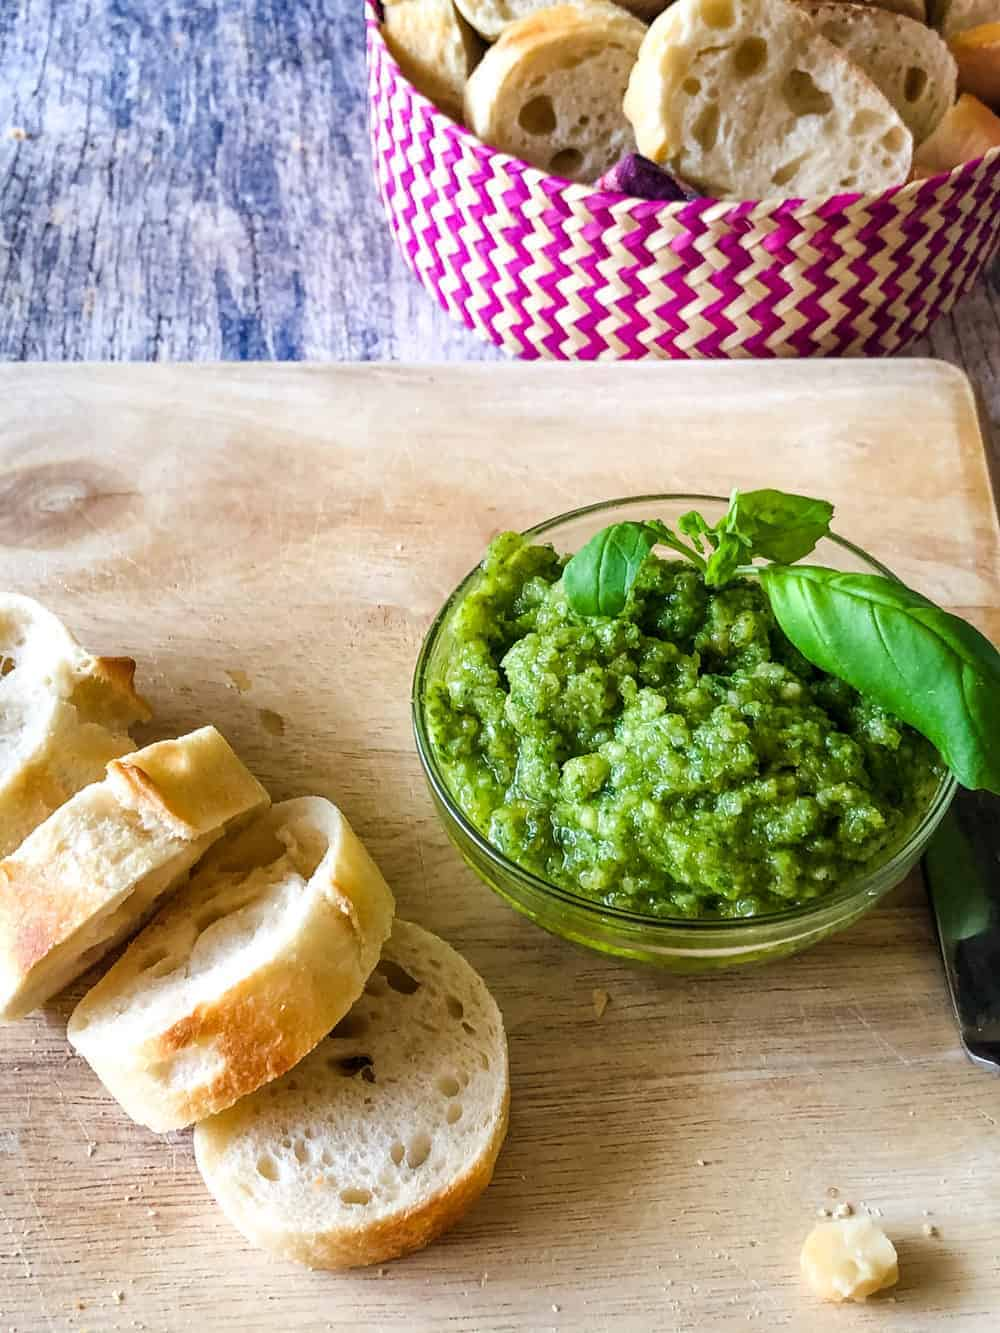 macadamia nut pesto in bowl with sliced bread